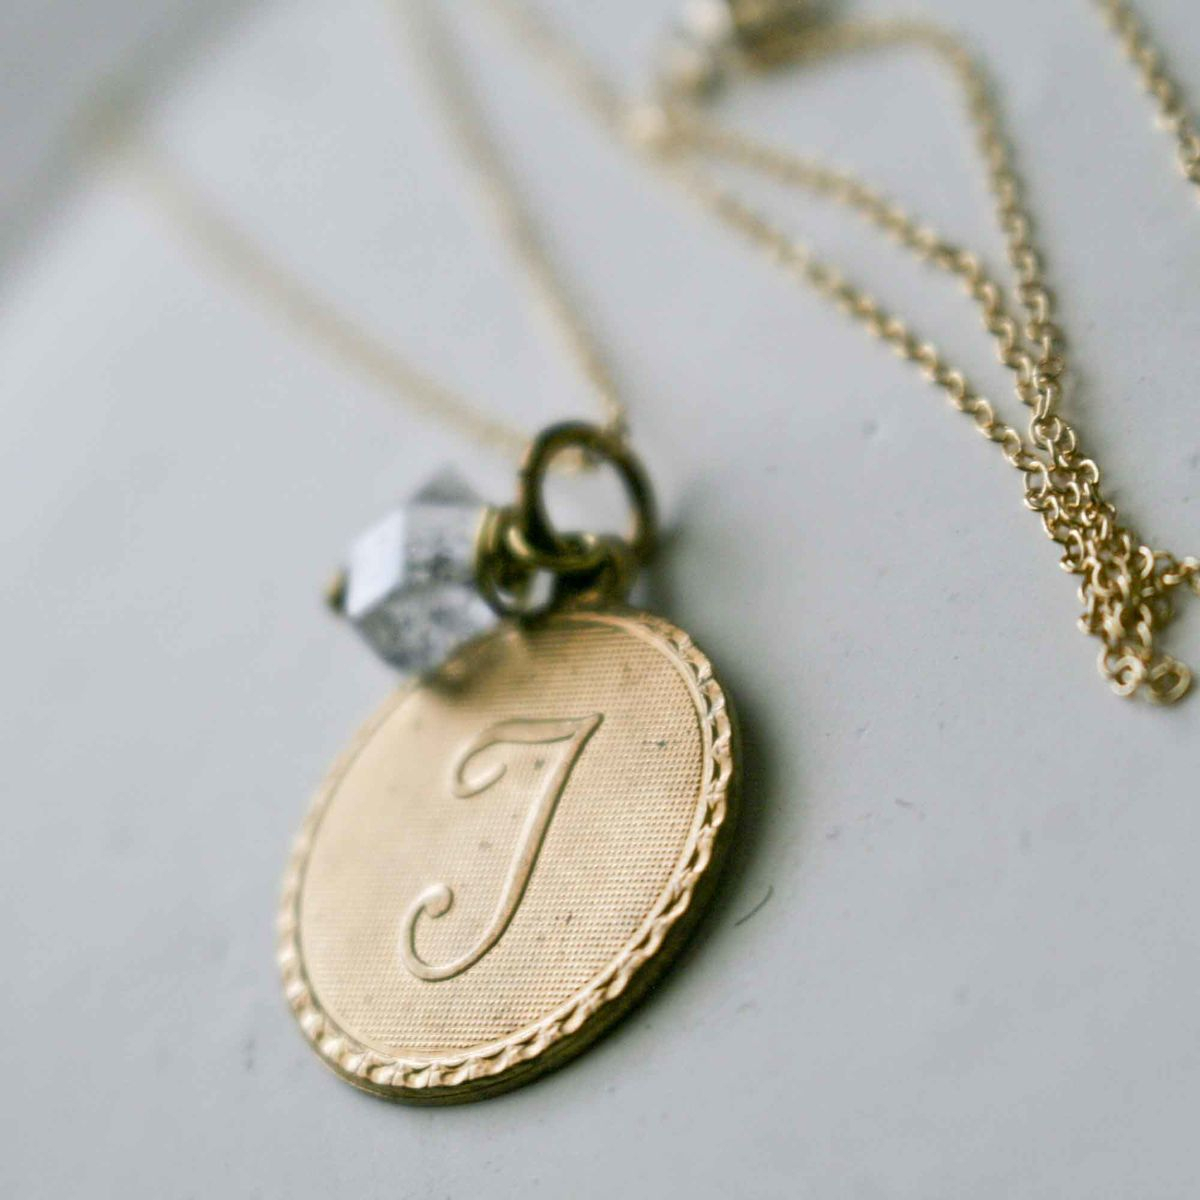 Uppercase Cursive Initial Monogram Letter Round Disc Charm Necklace Intended For Most Up To Date Letter U Alphabet Locket Element Necklaces (View 3 of 25)